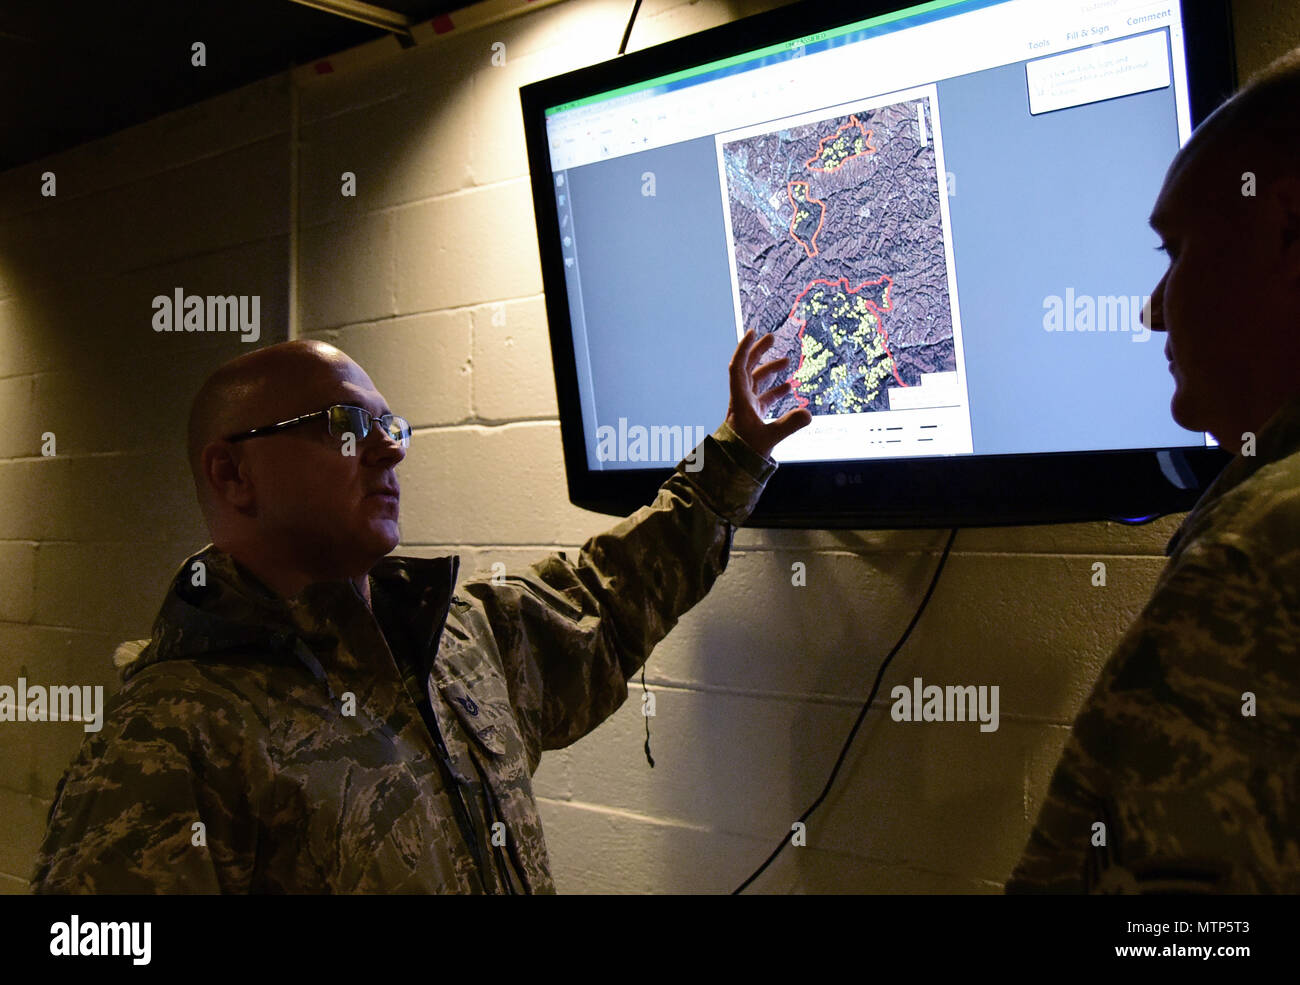 National Imagery And Mapping Agency Stock Photos & National Imagery ...